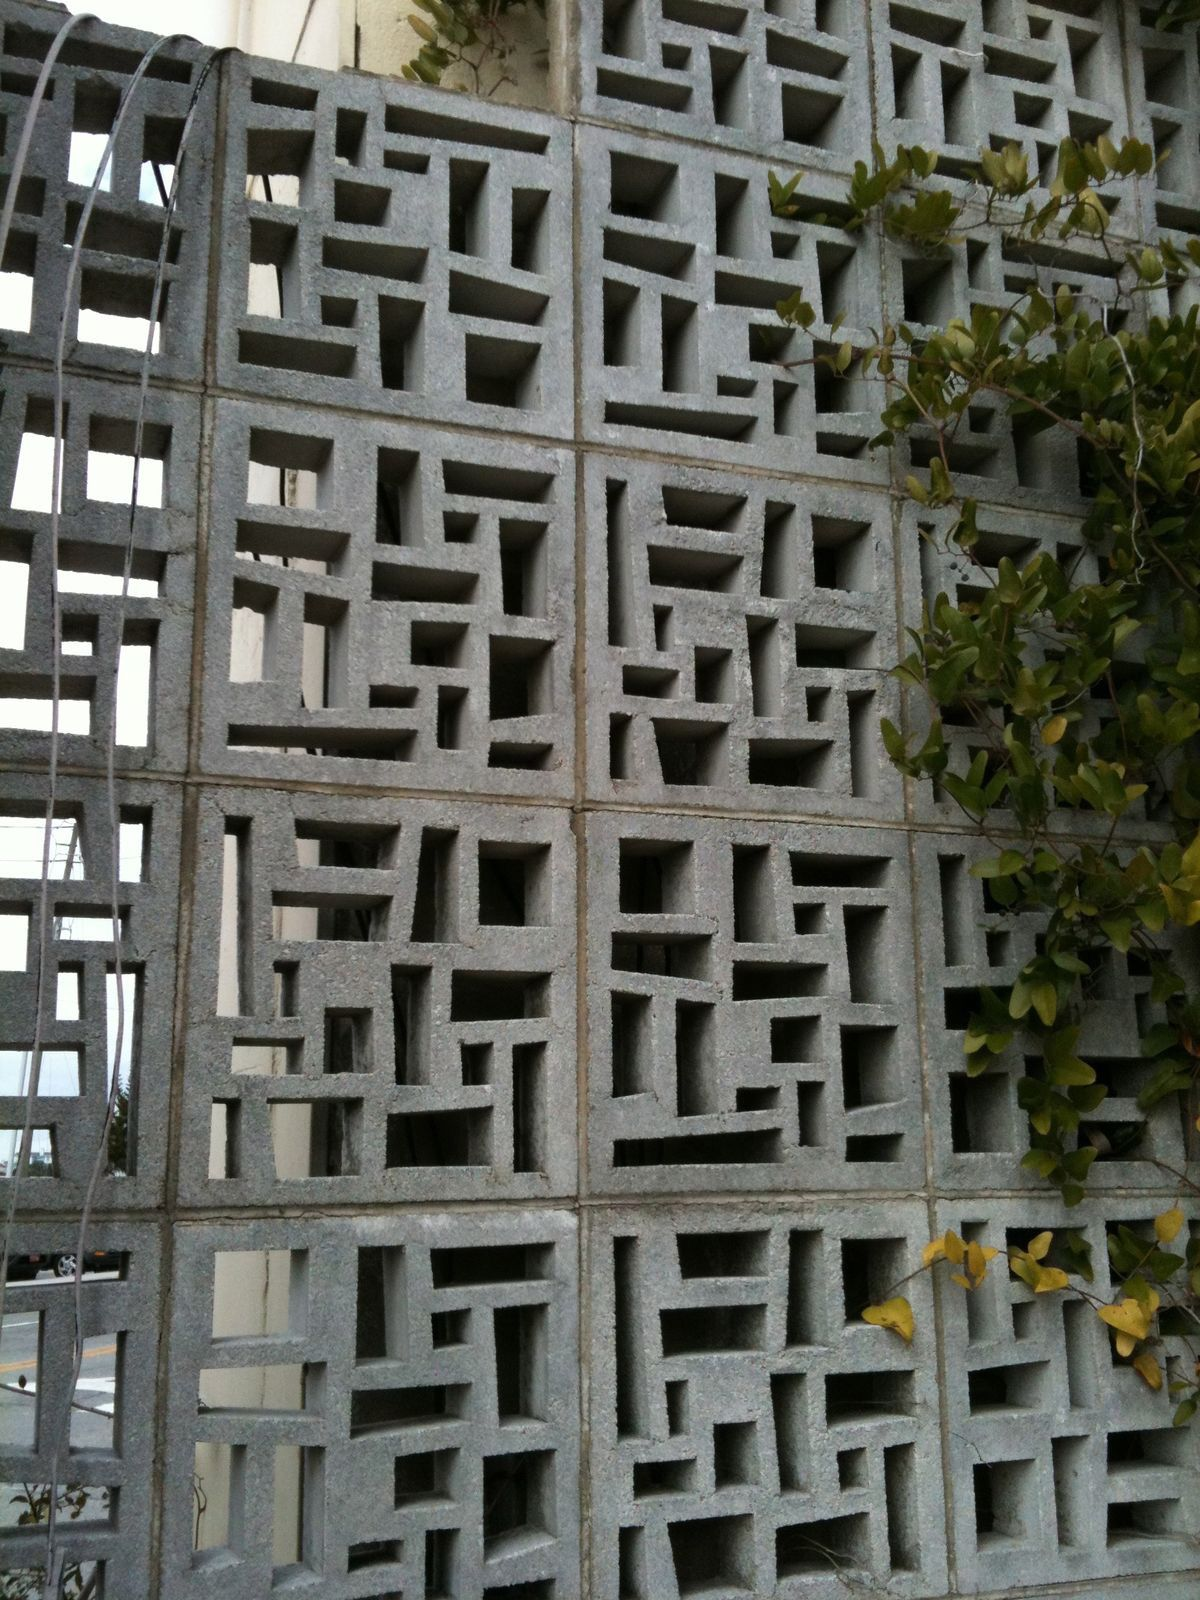 Breeze Blocks Breeze Block Wall Decorative Concrete Blocks Concrete Block Walls